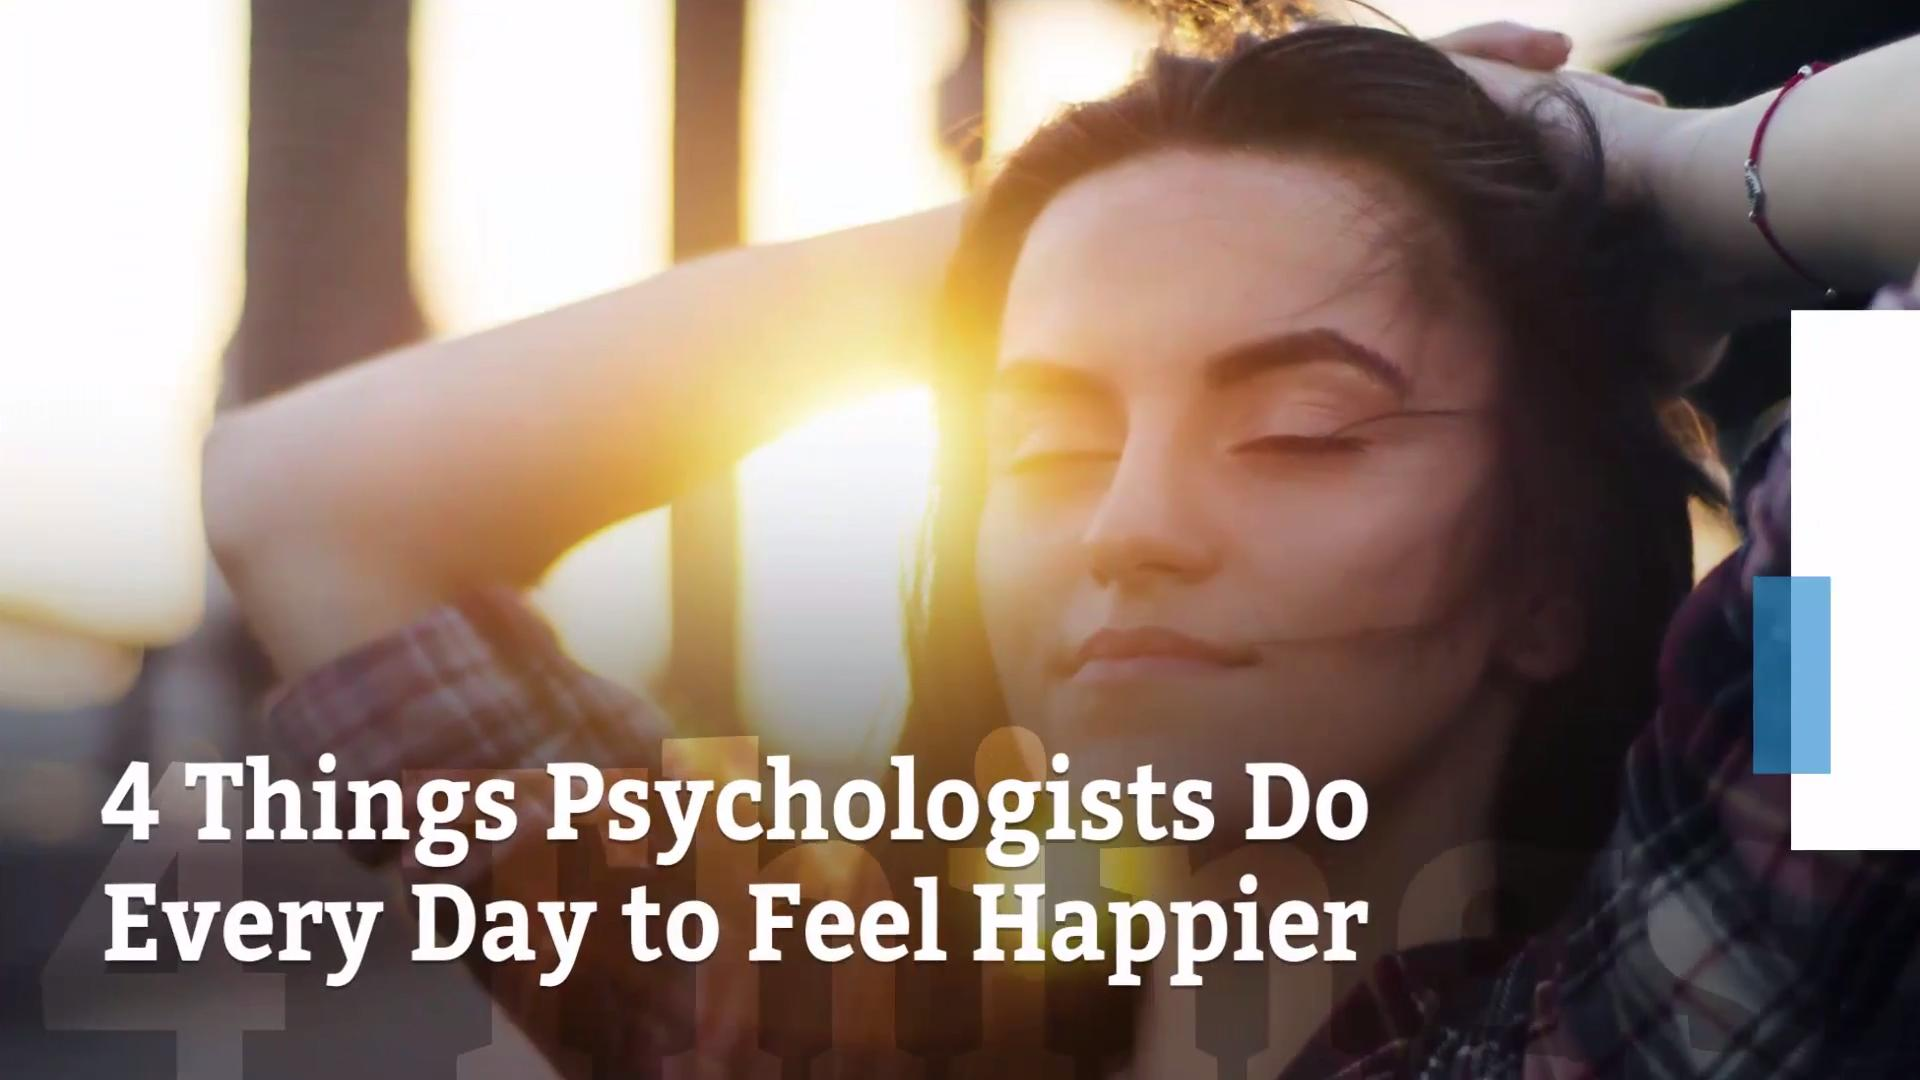 4 Things Psychologists Do Every Day to Feel Happier